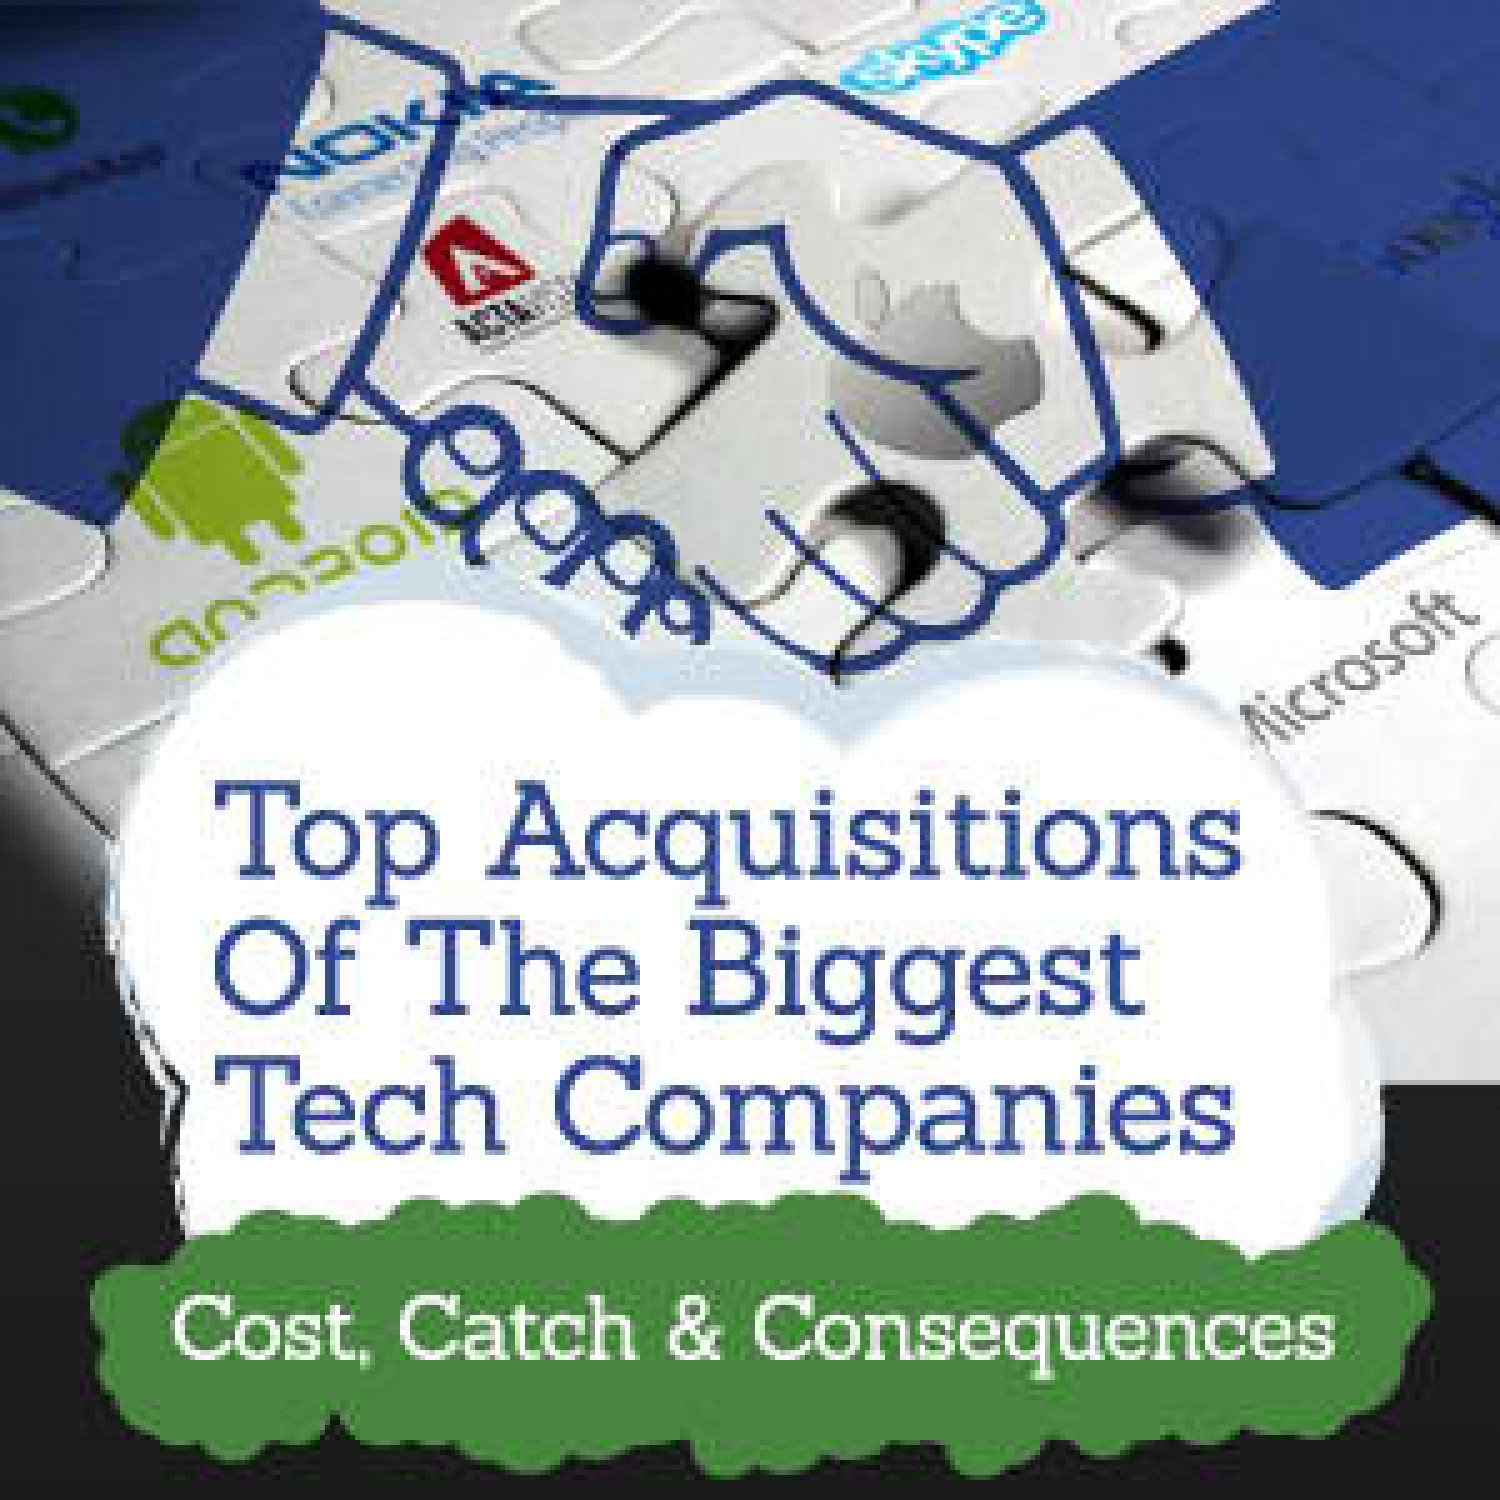 The Acquisitions of the Biggest Tech Companies Infographic